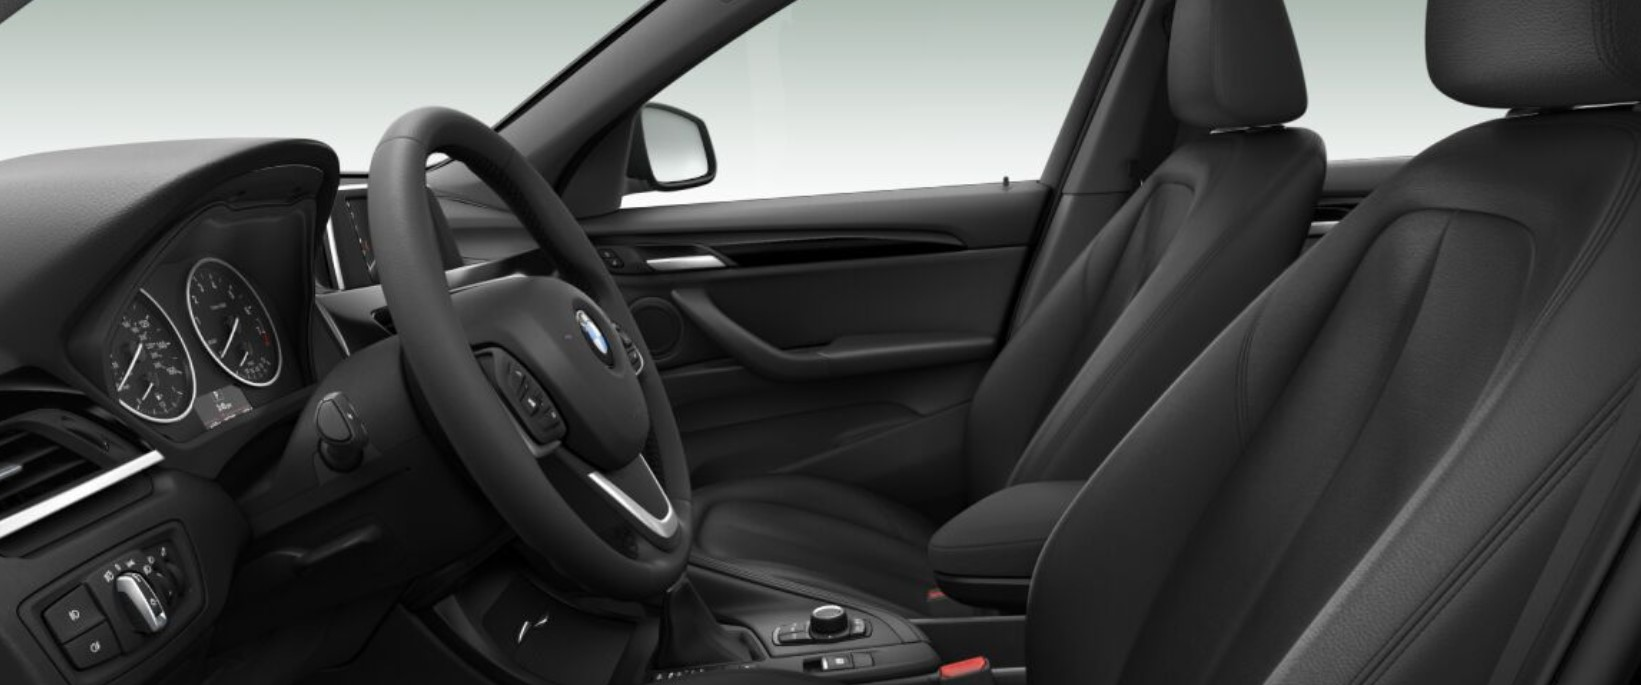 2018 BMW X1 Black Leather Interior